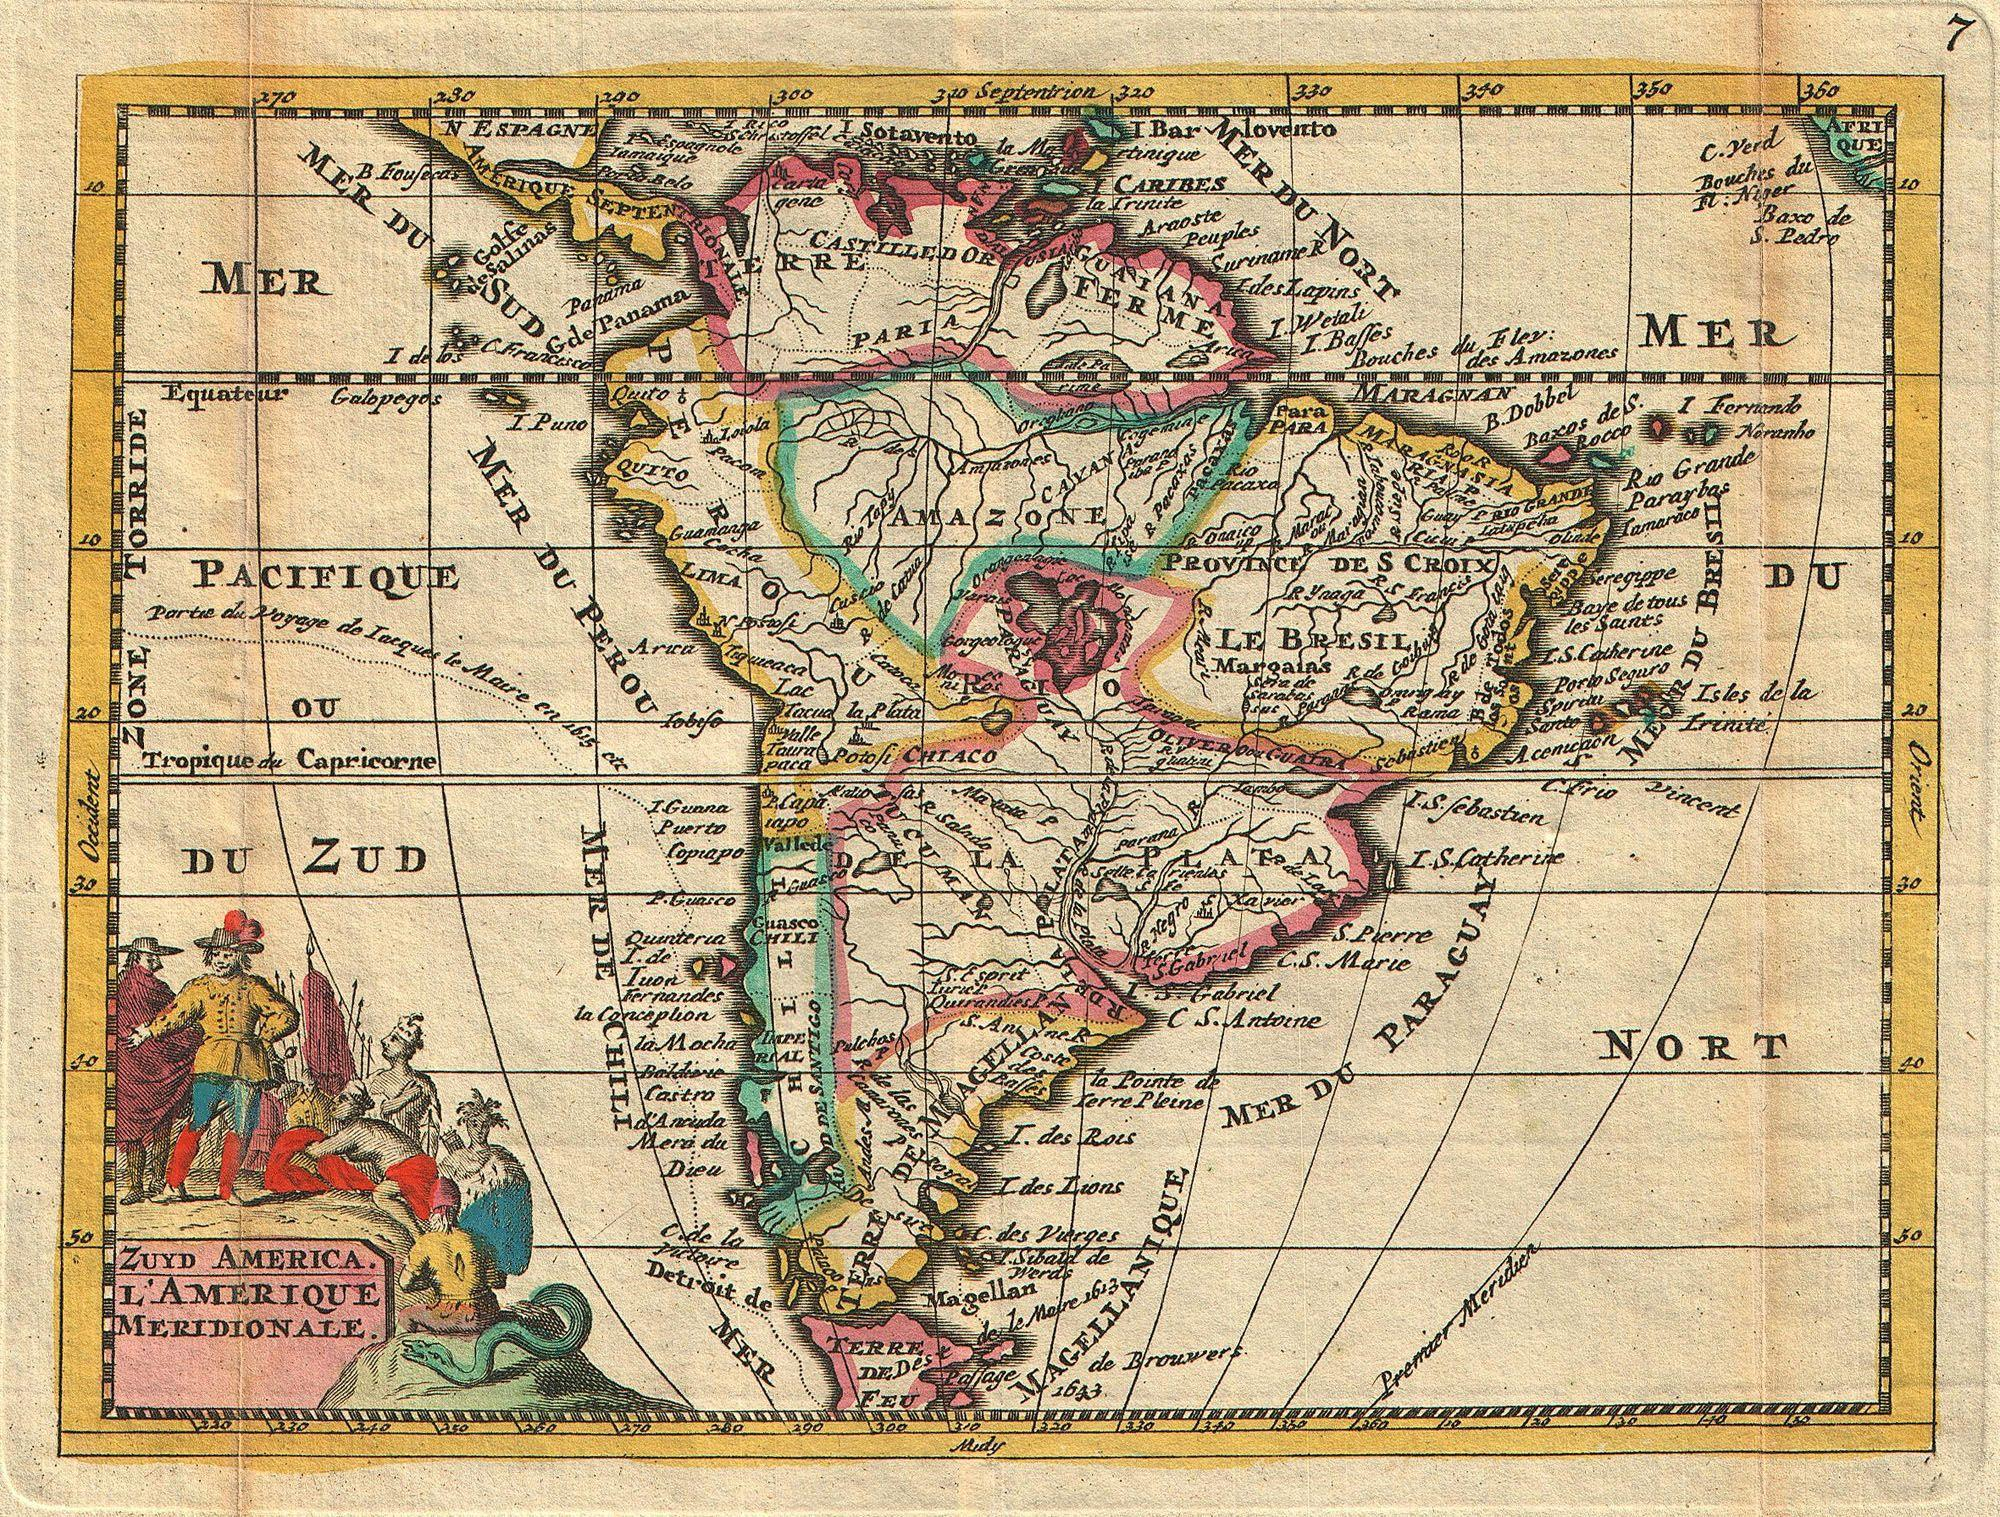 File:1747 La Feuille Map of South America - Geographicus ... on old maps of the netherlands, old map of pacific northwest, old map of british isles, old map of venezuela, old map of ancient rome, old timey of central america, old map of namibia, old map of india, old maps of north america, old map of hong kong, old map of bhutan, old map of arabian peninsula, old map north africa, old south plantation map, old map of belarus, old map of iraq, old map of bulgaria, old map of greenland, old map of iberian peninsula, old usa map,